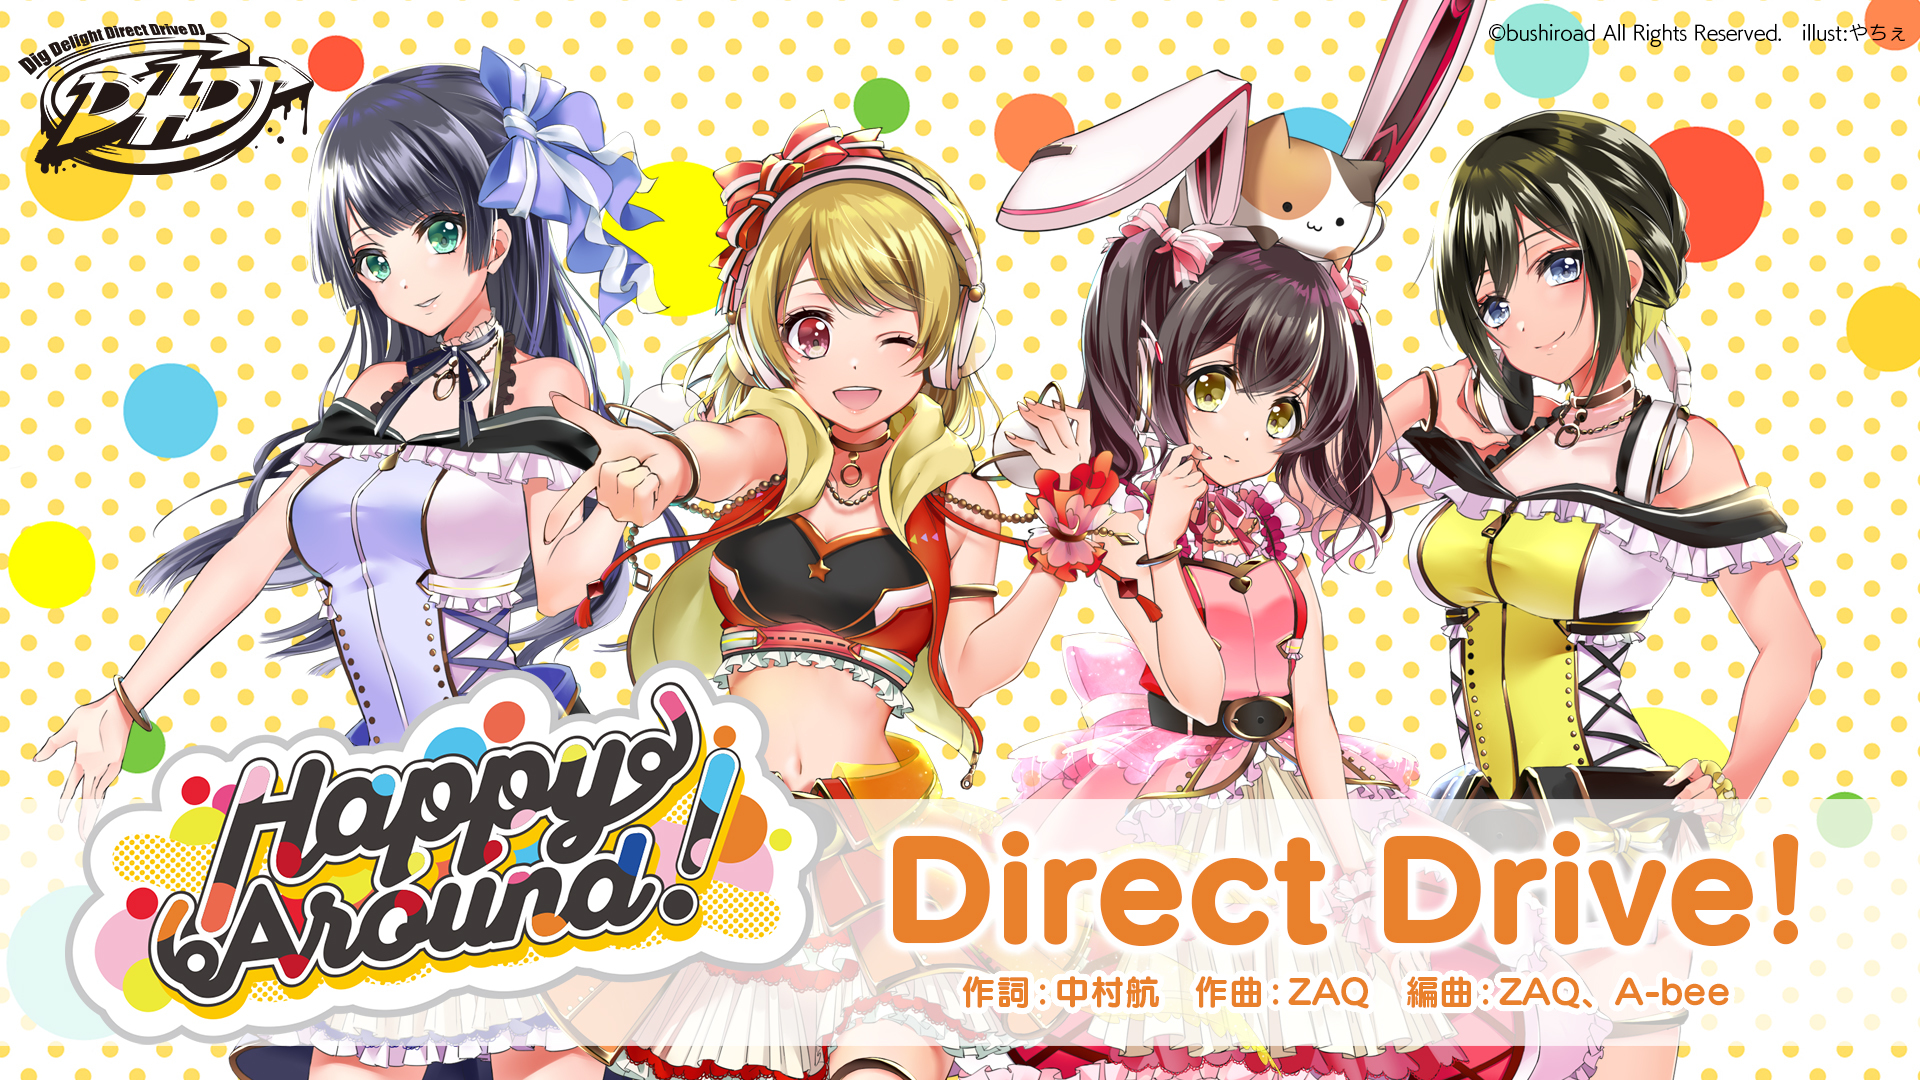 D4DJ 発のユニット「Happy Around!」のオリジナル楽曲「Direct Drive!」 ©bushiroad All Rights Reserved.